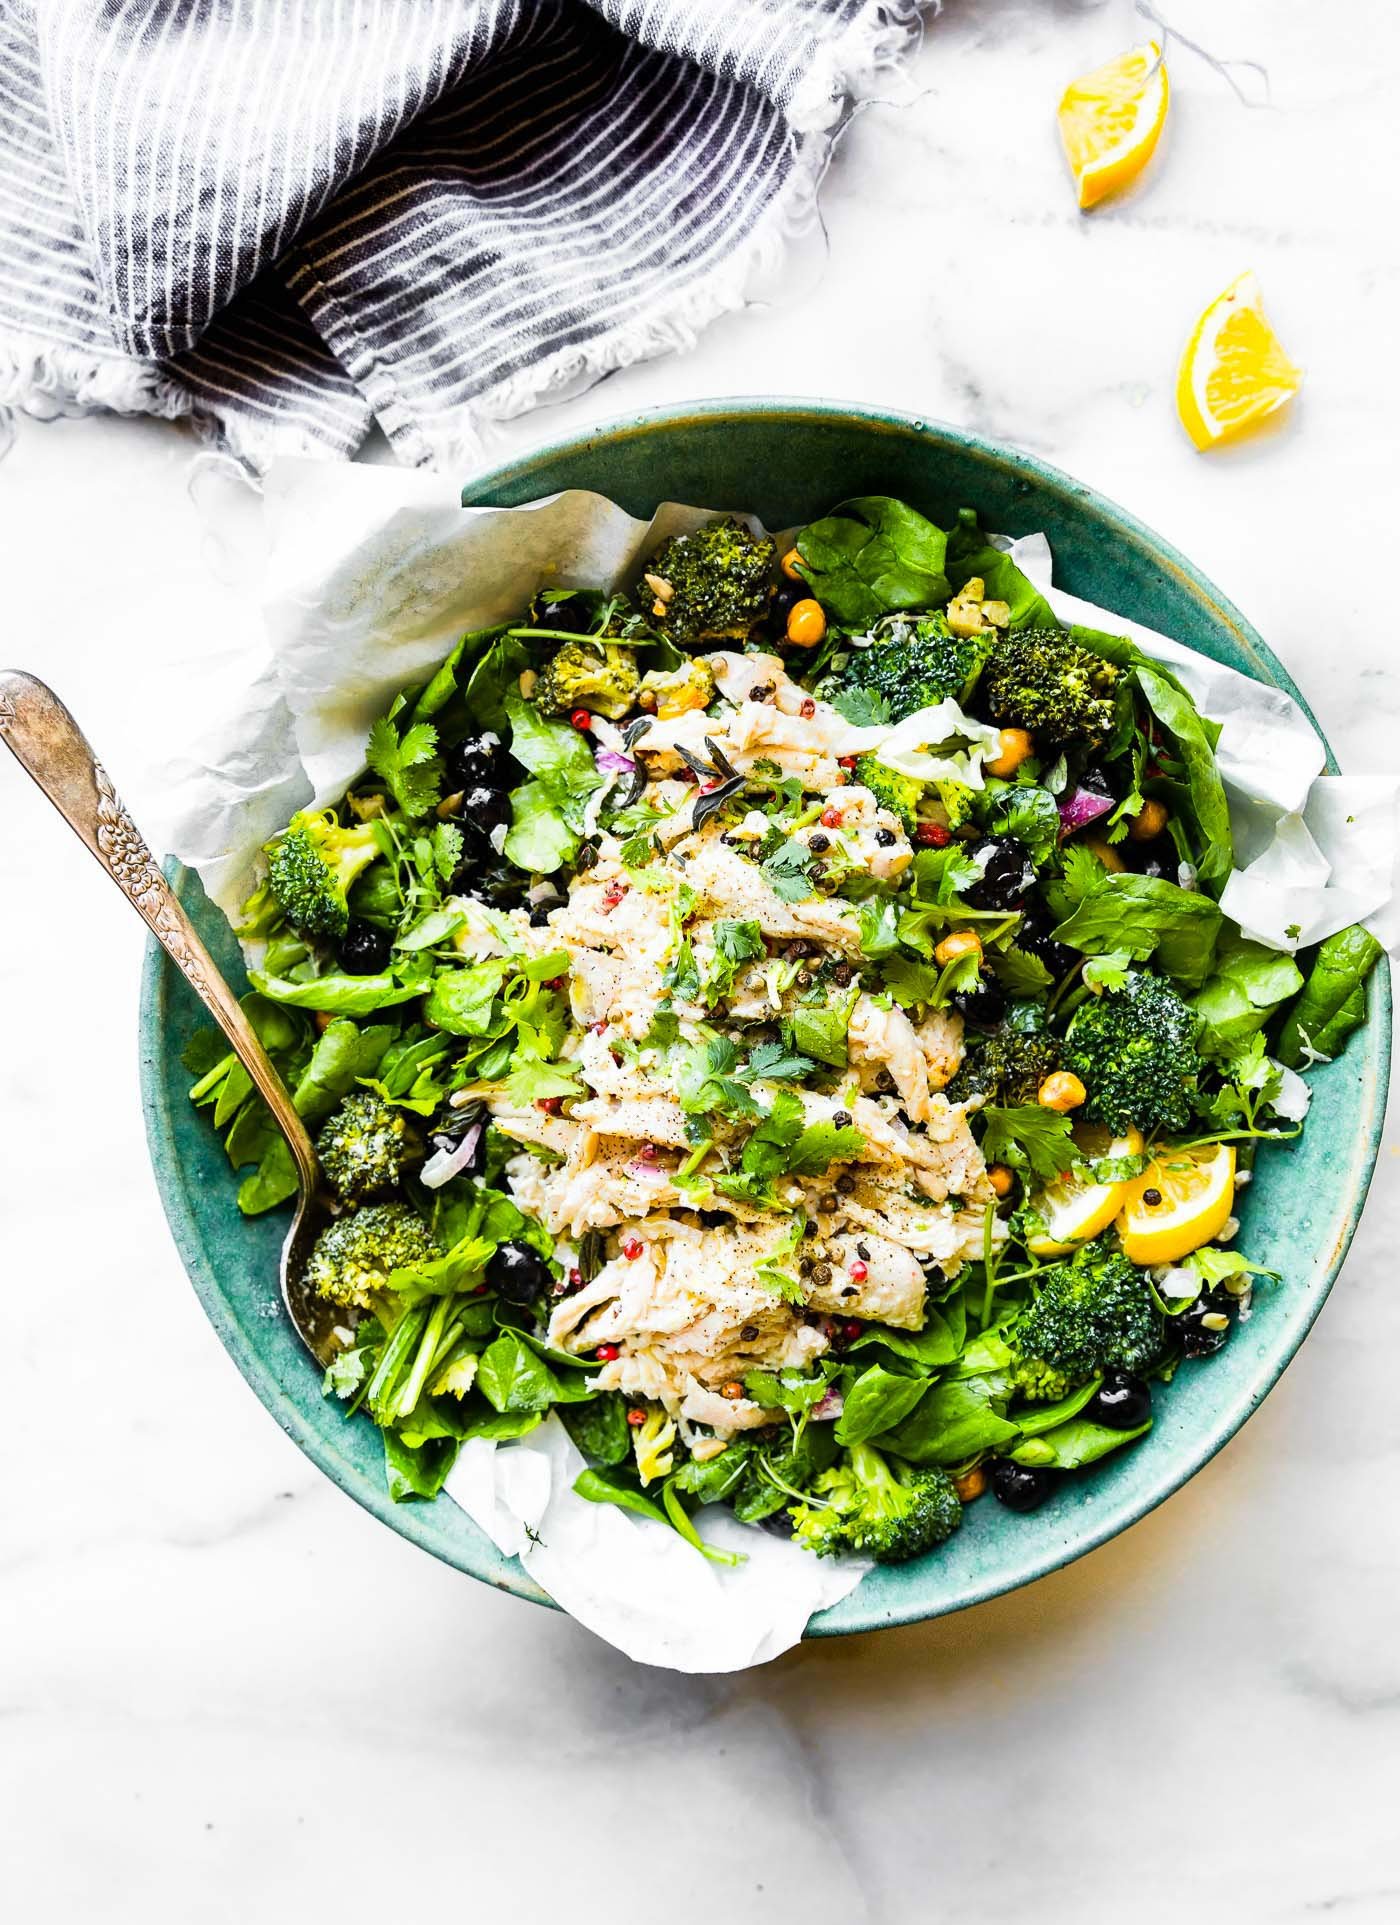 A lightened up Mayo Free Chicken Salad! A chicken salad bowl that's perfect for a healthy meal or side dish. Spinach, roasted broccoli, berries, chickpeas, roasted chicken, and herbs tossed in a light yogurt olive oil dressing.